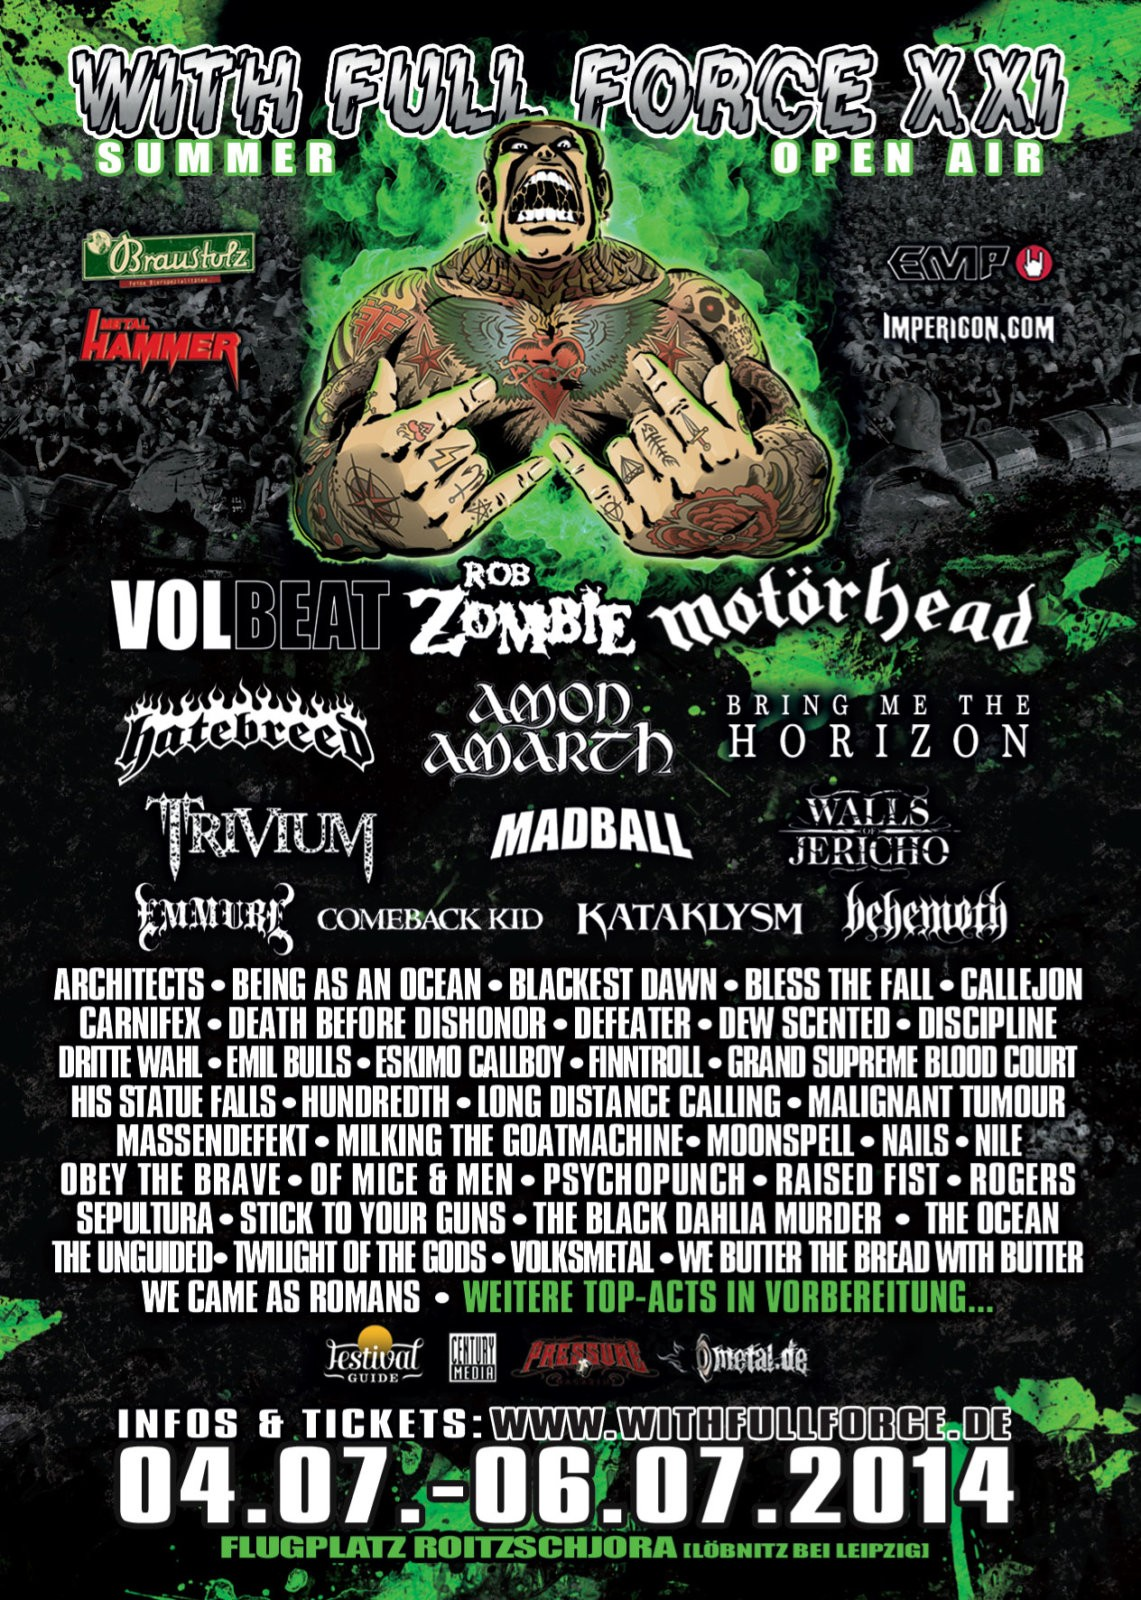 With Full Force 2014 – Infos zu Lineup, Bands und Tickets